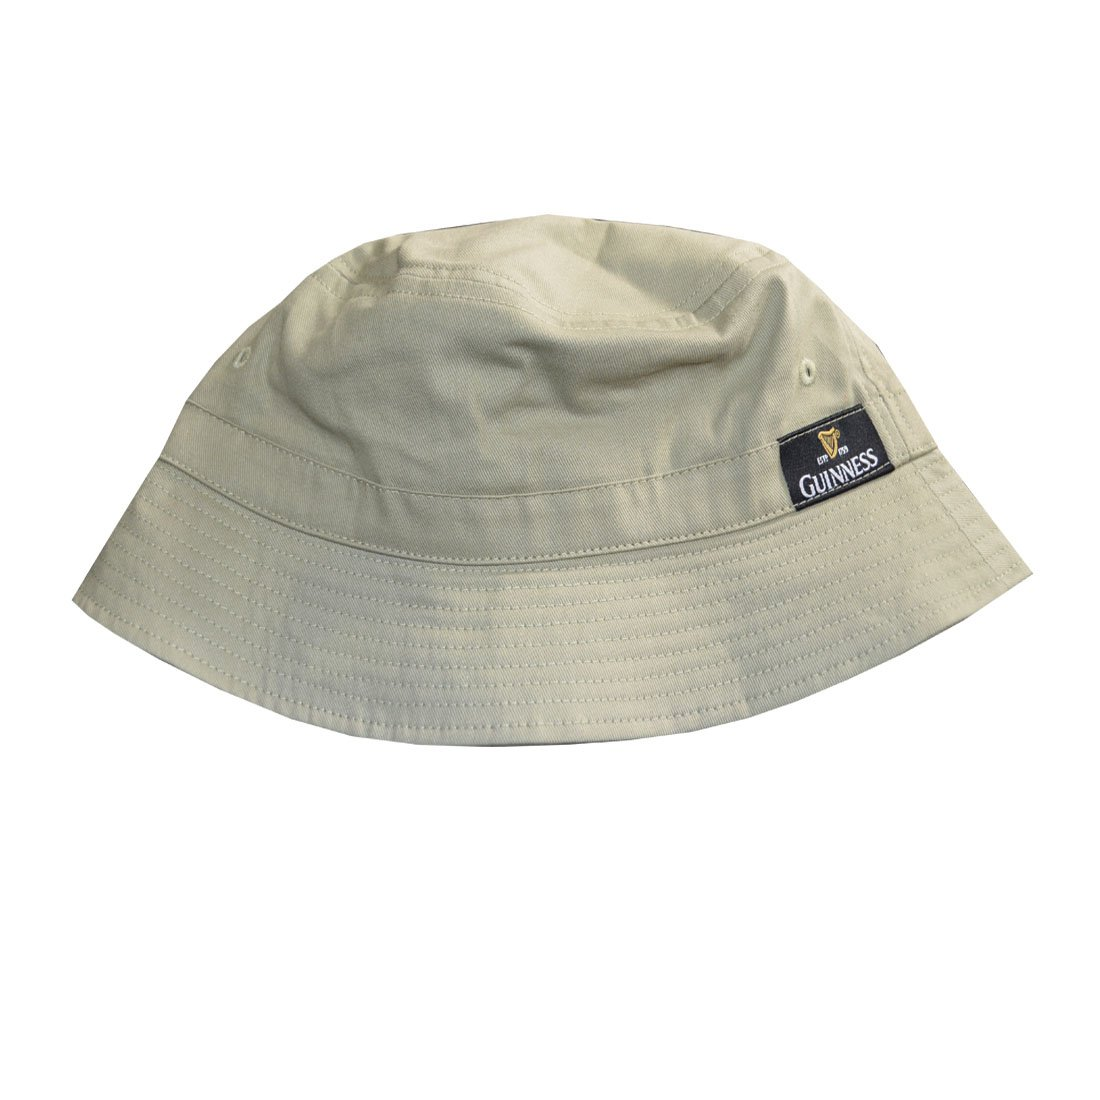 Khaki Green Guinness Fisherman's Hat With Gold Harp Logo